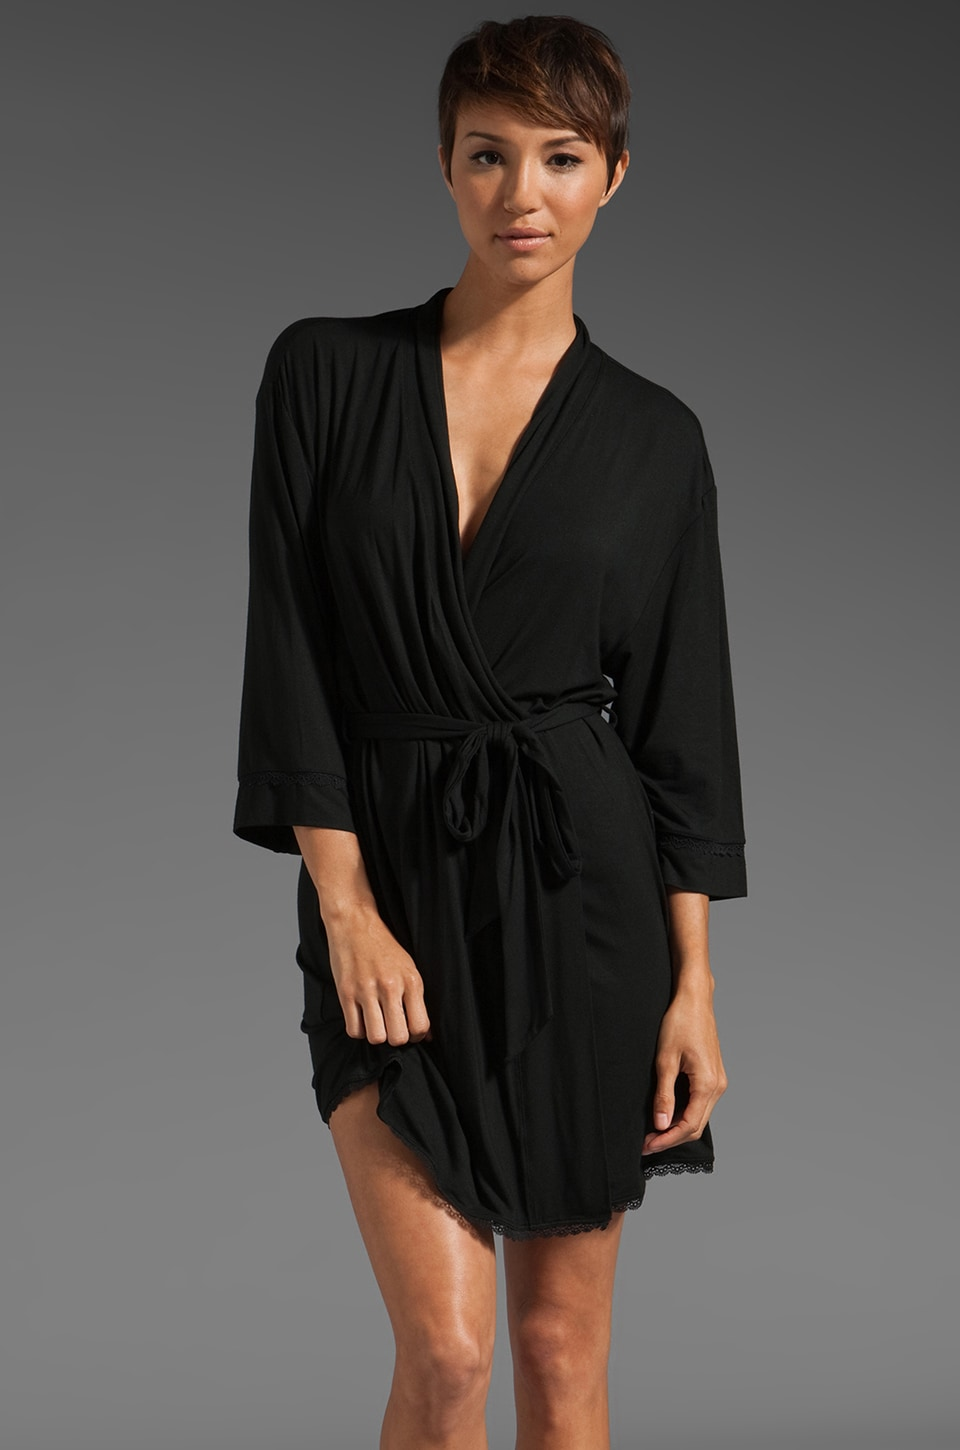 Juicy Couture Robe in Black